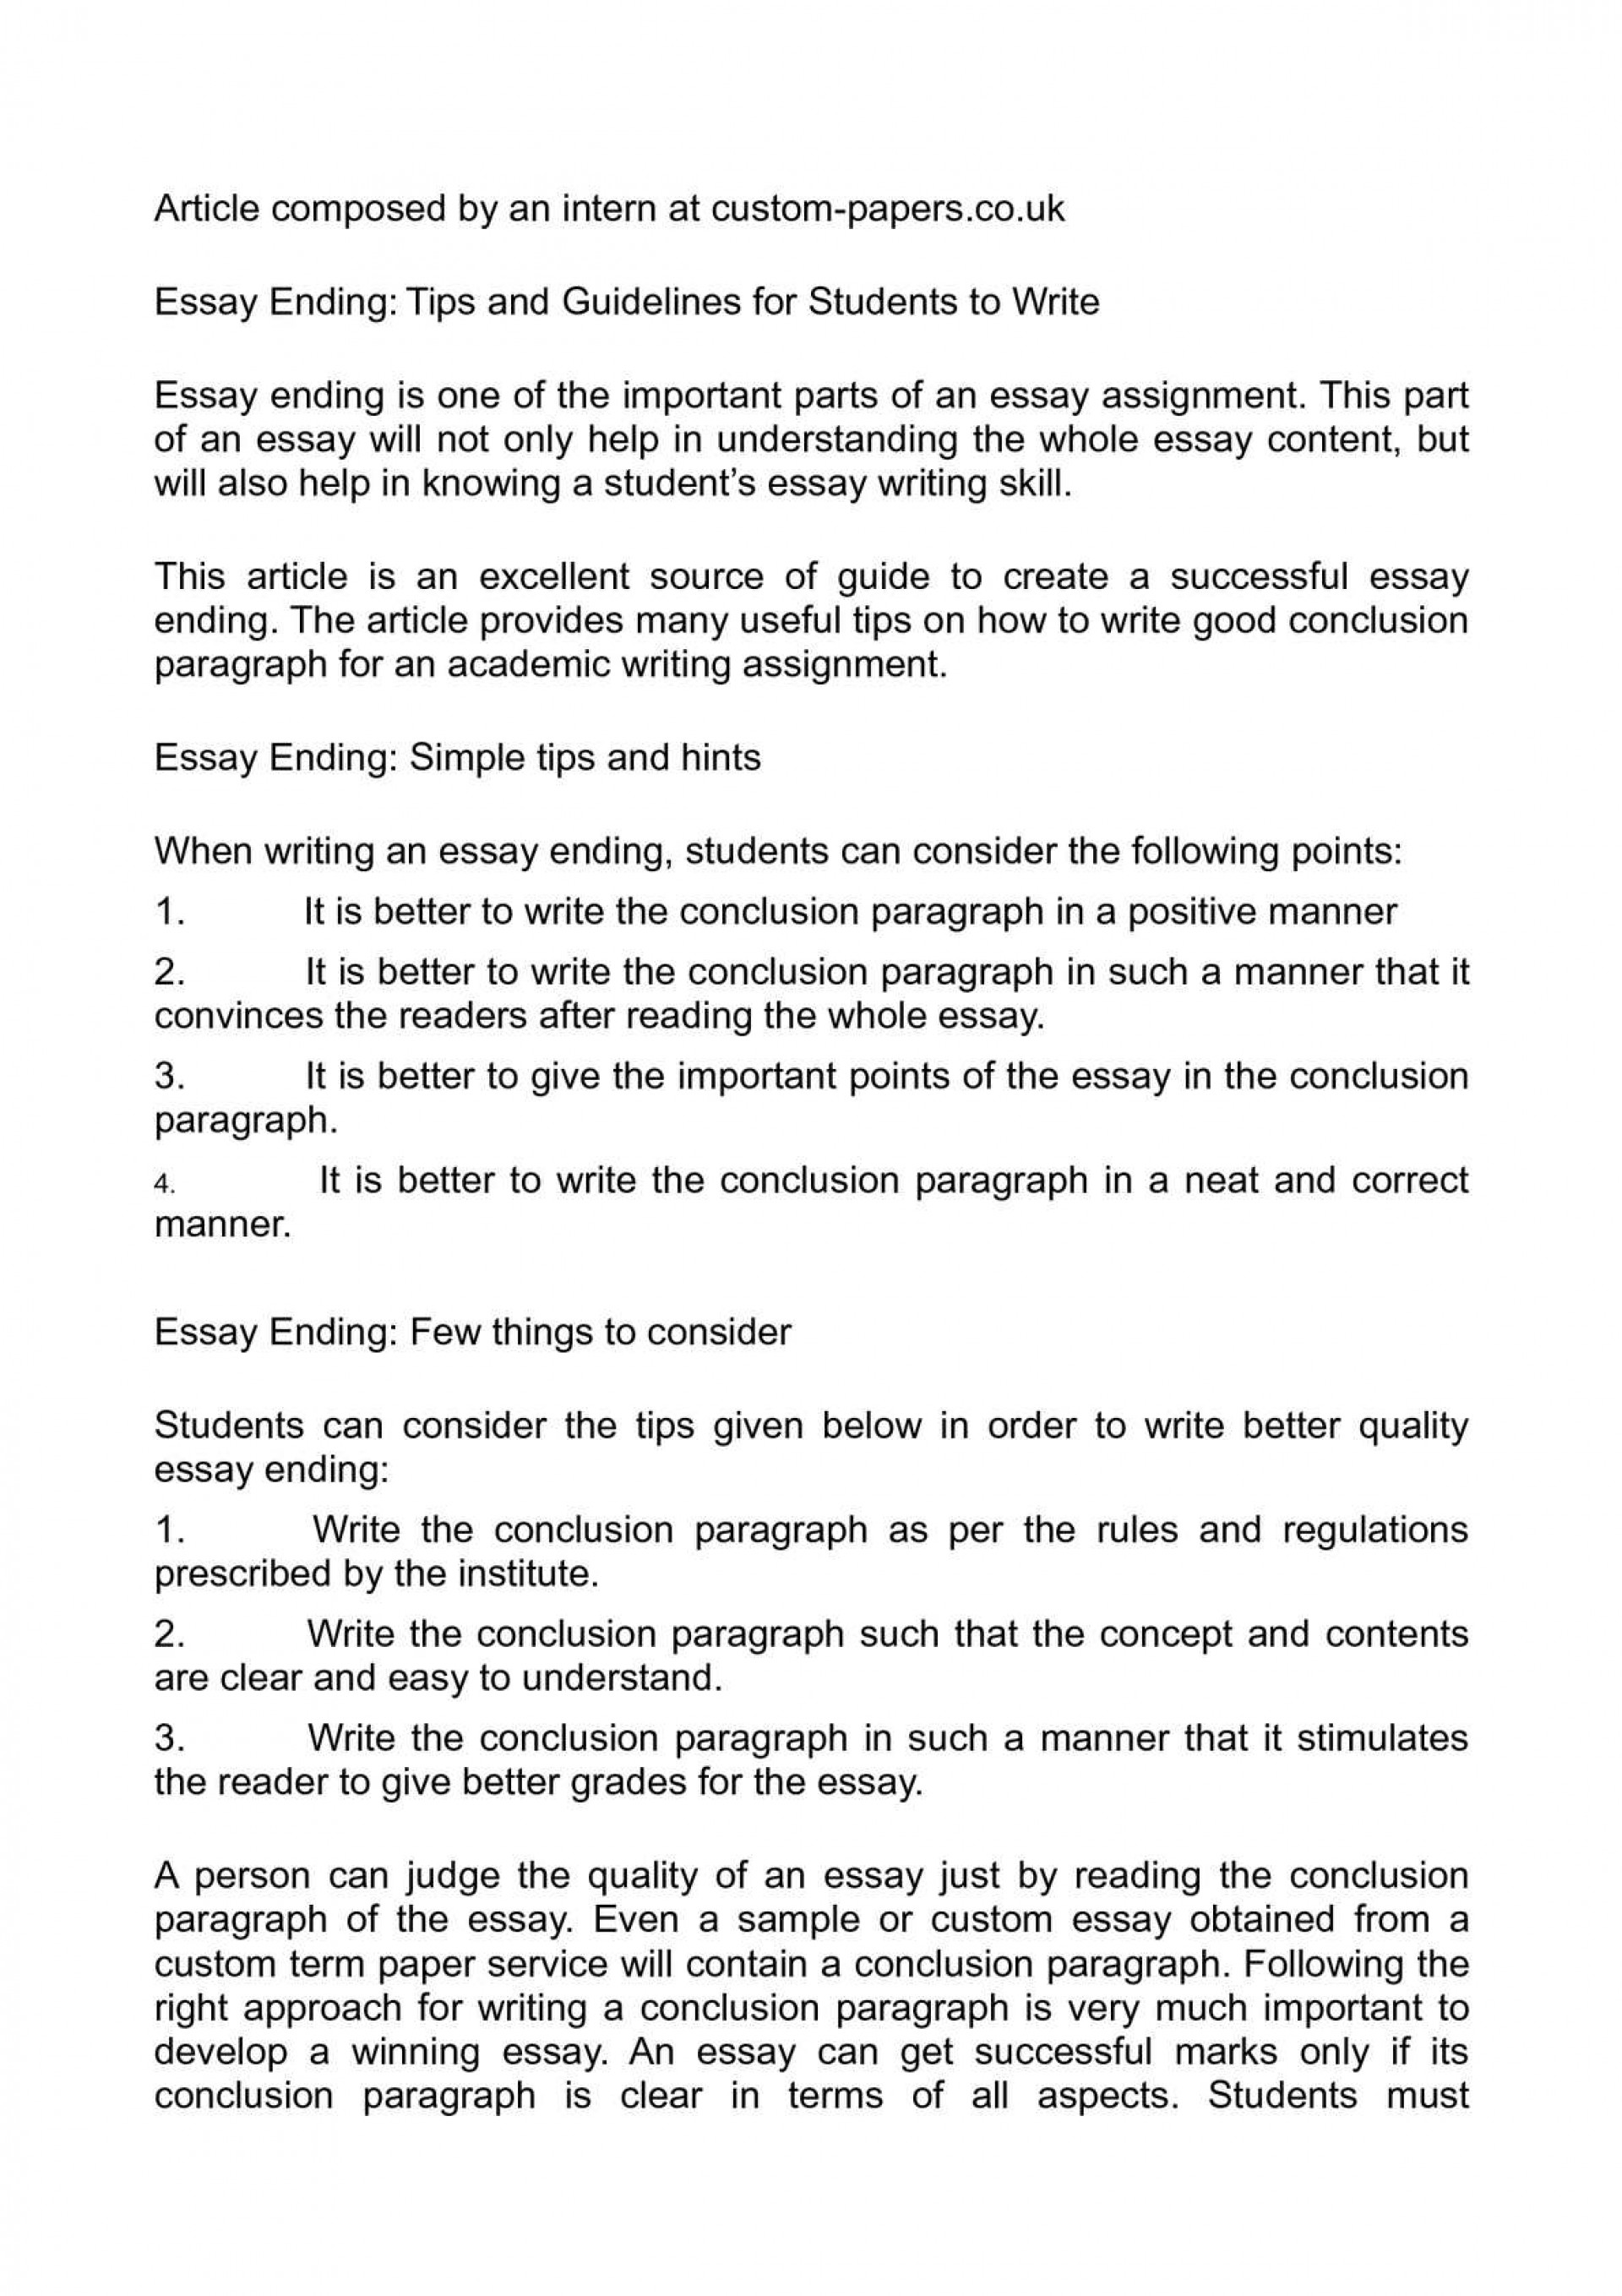 001 Parts Of An Essay Ending Tips And Guidelines For Students To Write Writing Persuasi Pdf Three Persuasive Stupendous Quizlet Worksheet 1920